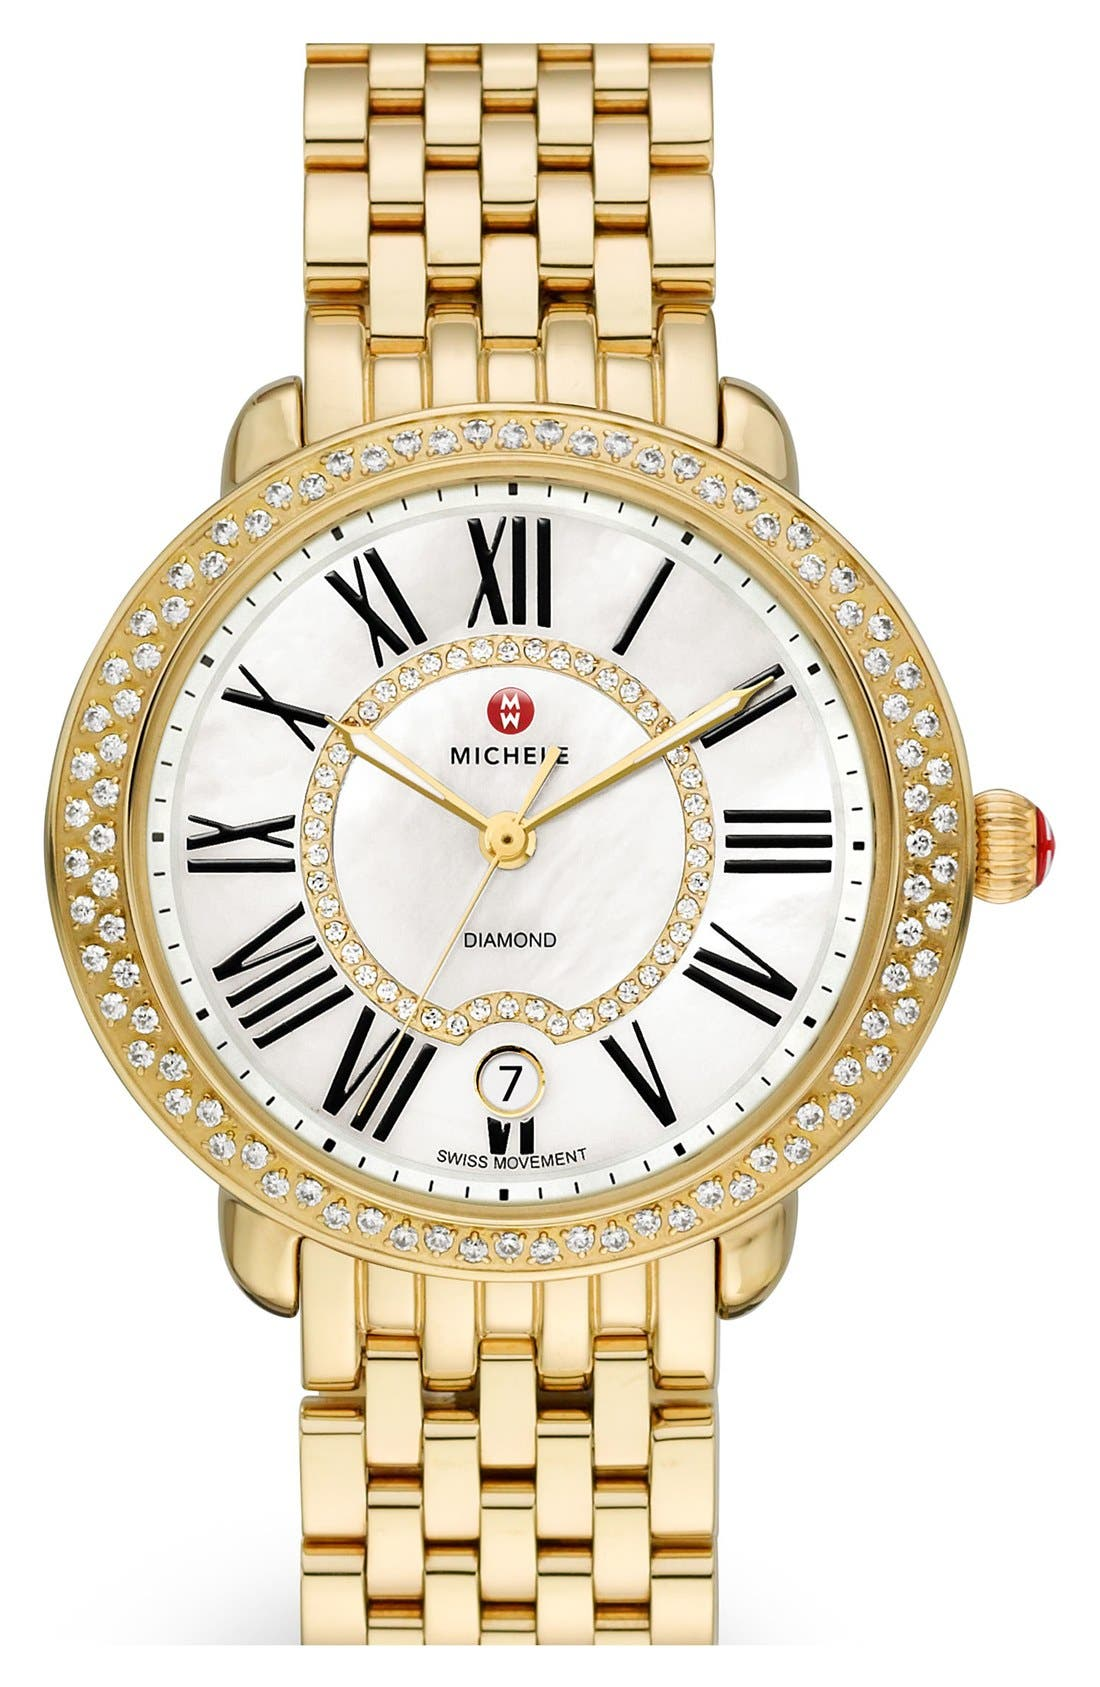 Serein 16 Diamond Gold Plated Watch Case, 34mm x 36mm,                             Alternate thumbnail 3, color,                             GOLD